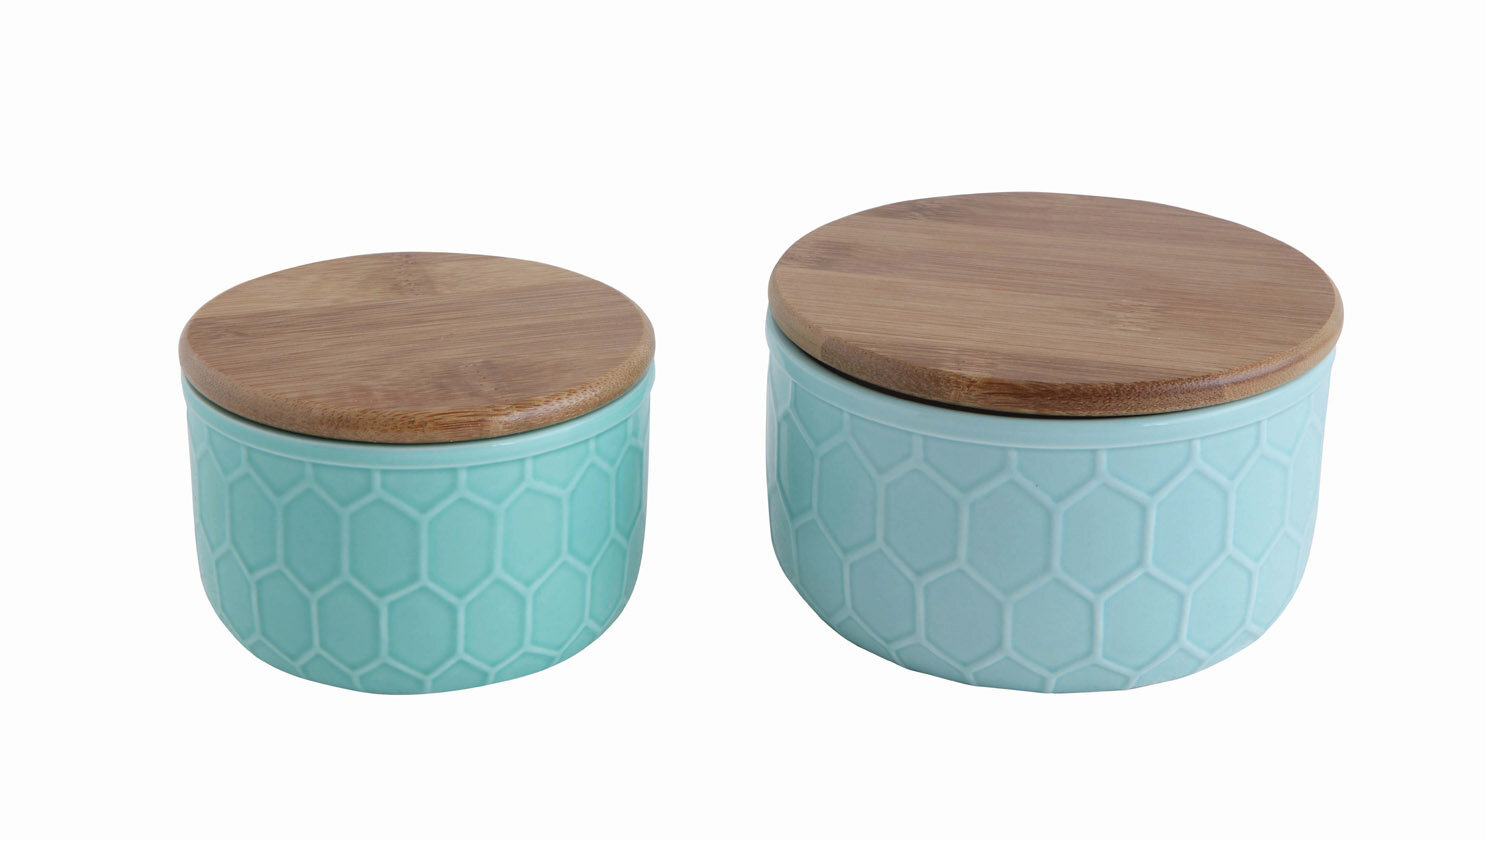 Mint Pantry Bamboo Lid 3 Piece Kitchen Canister set | Wayfair